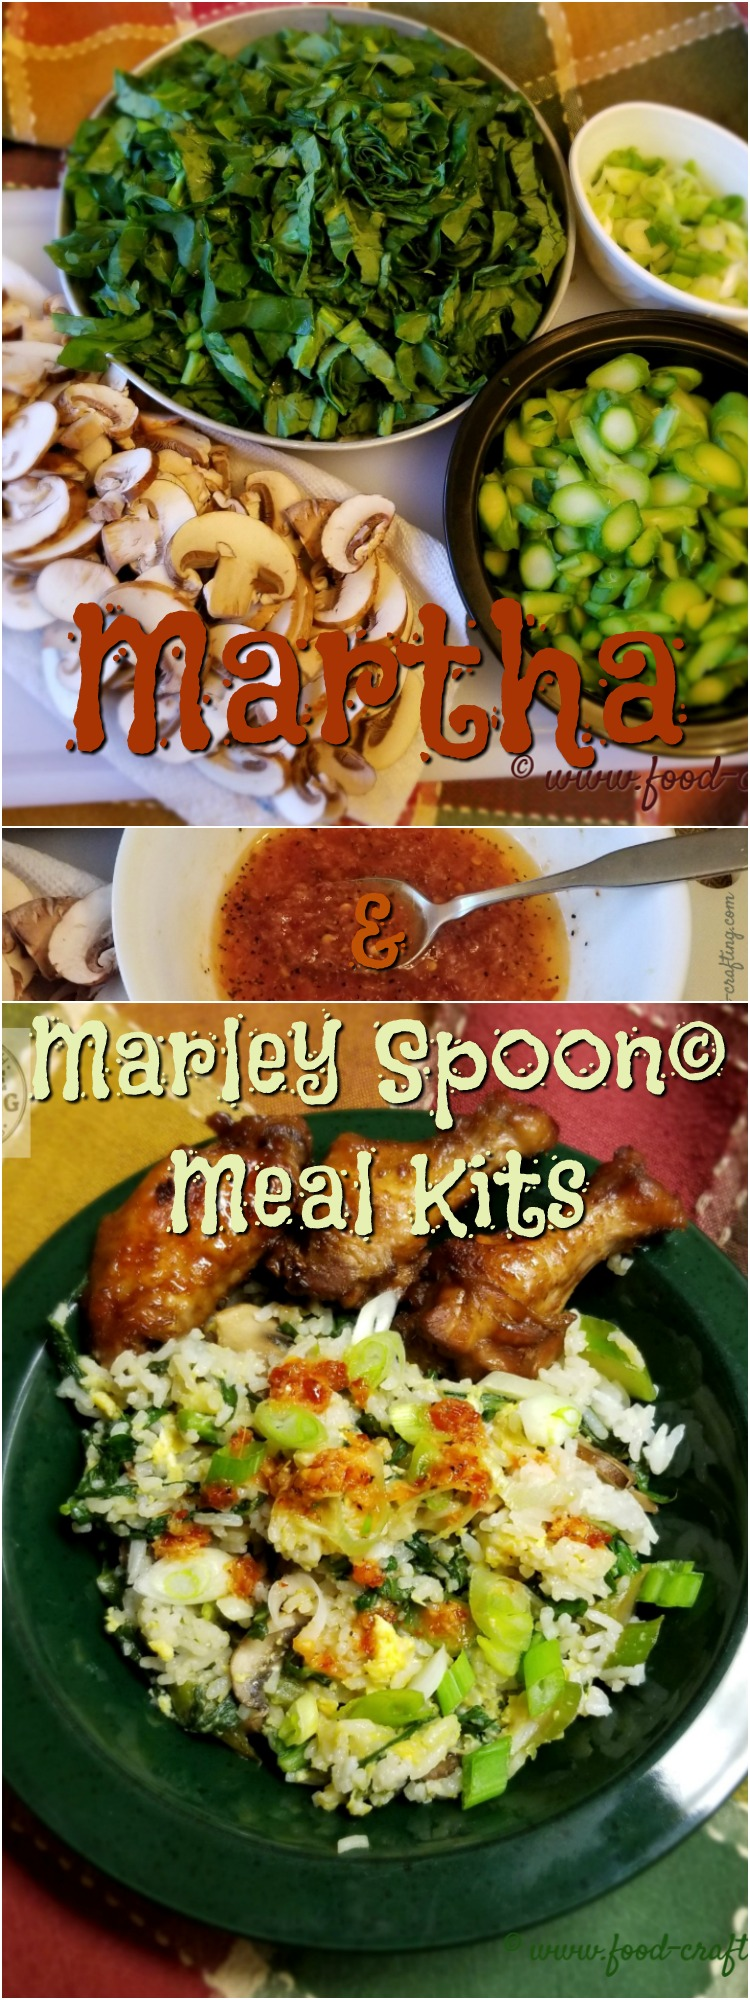 Gourmet meal kits - Marley Spoon #recipe meal kits